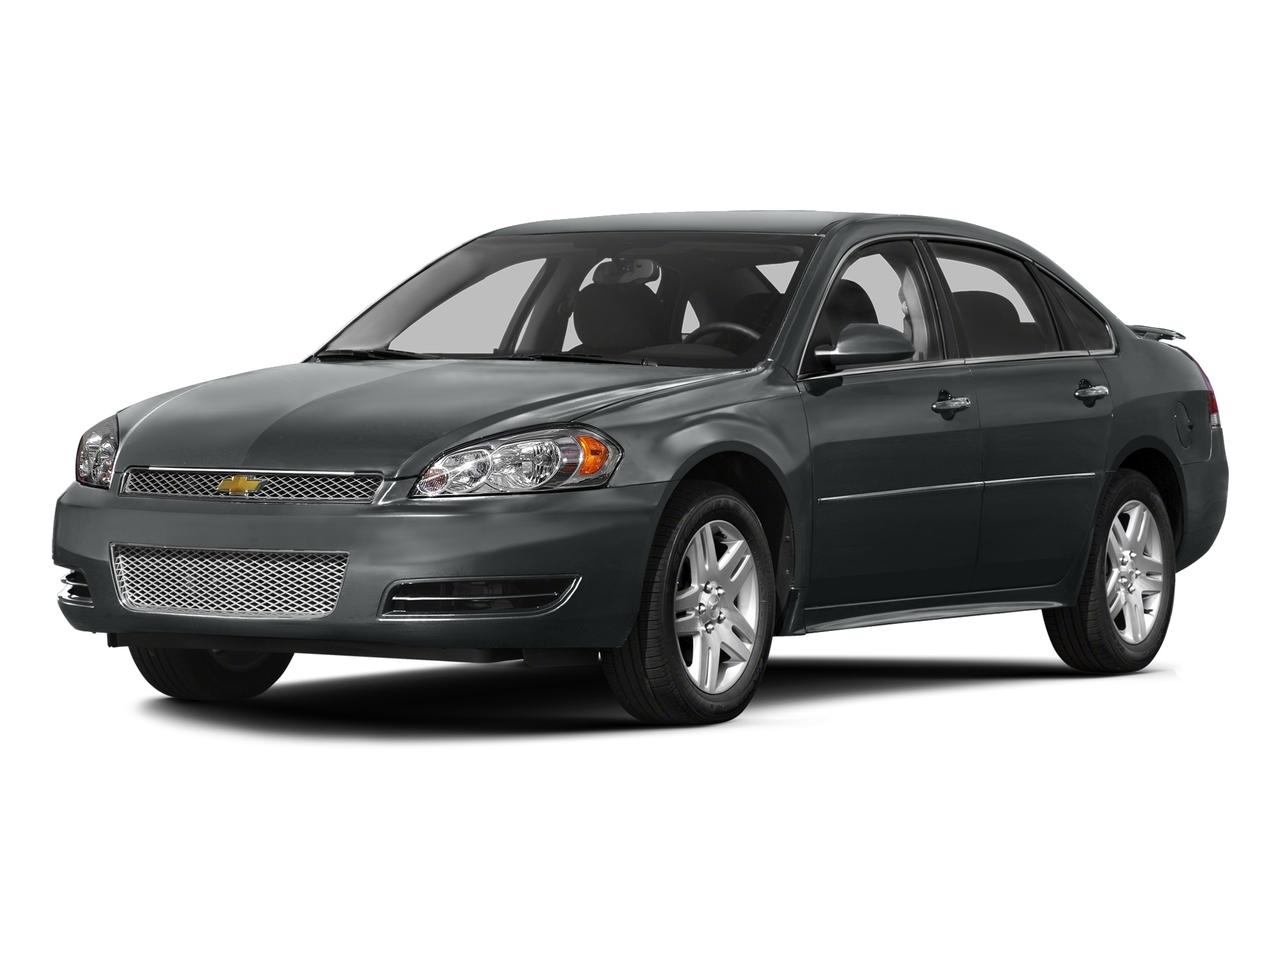 2016 Chevrolet Impala Limited Vehicle Photo in Decatur, IL 62526